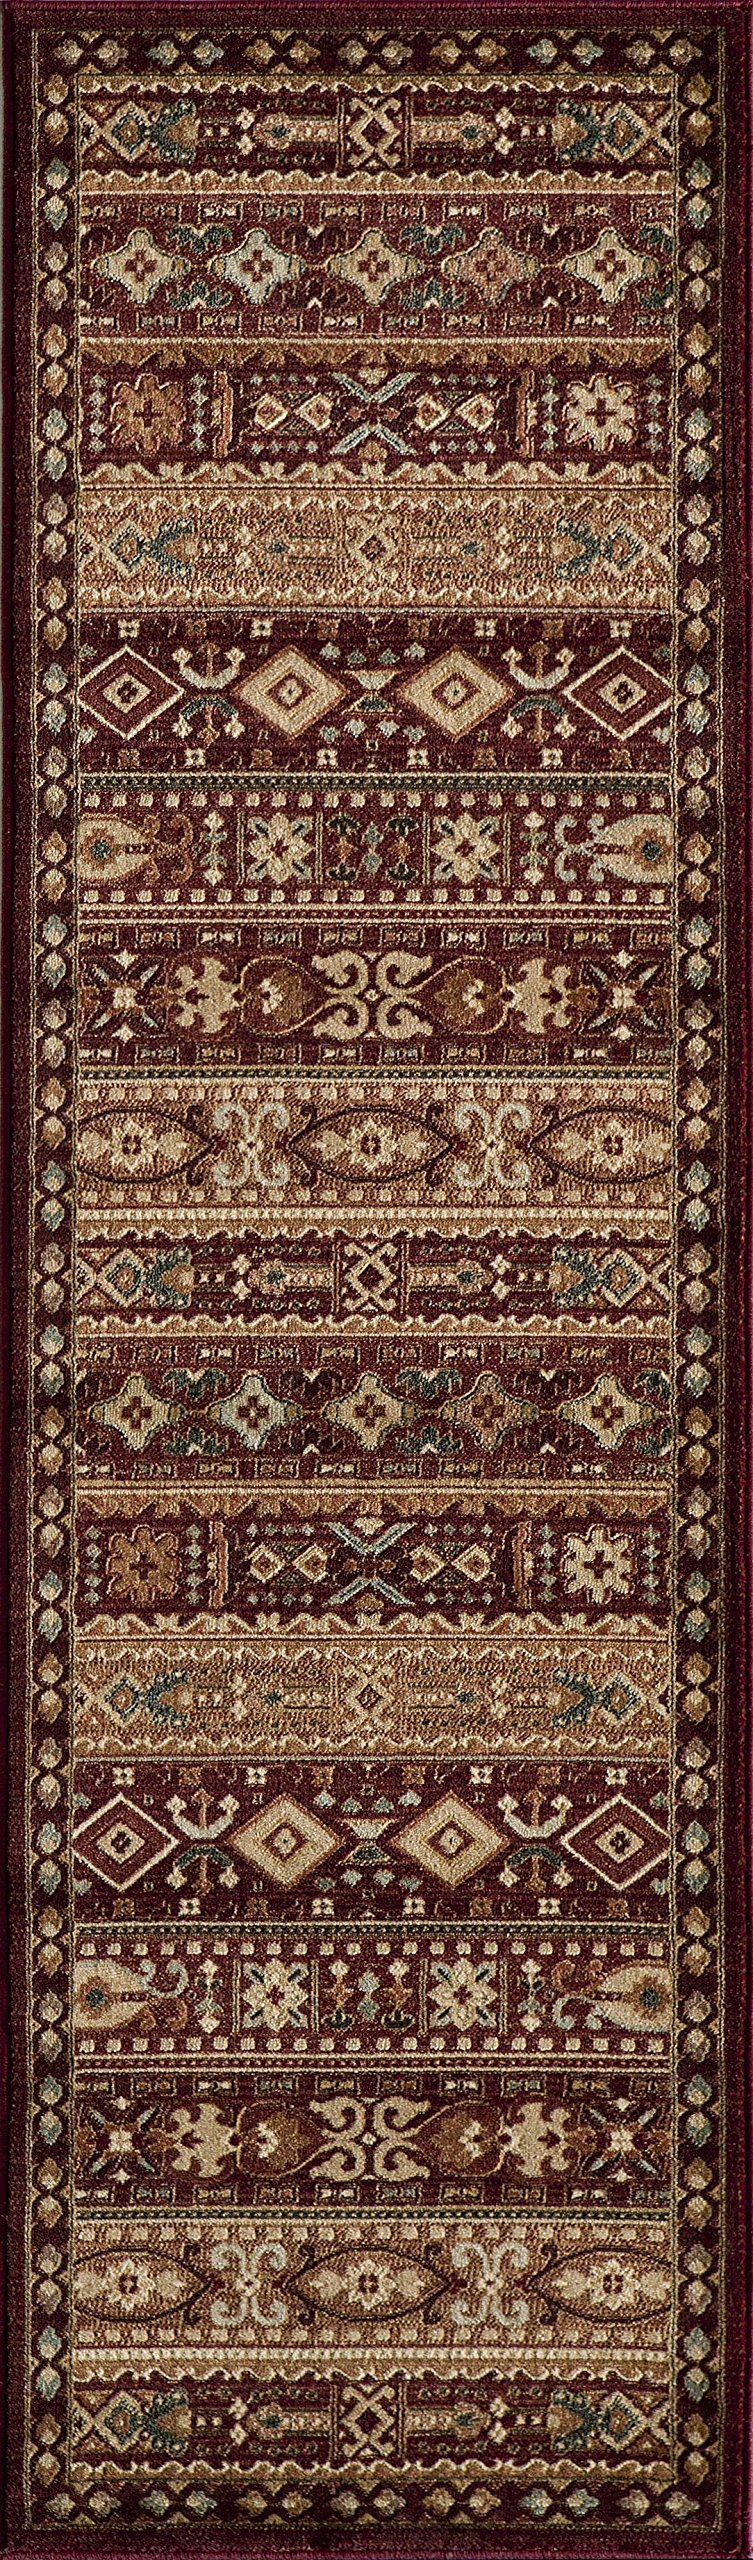 Momeni Rugs BELMOBE-04RED2376 Belmont Collection, Traditional Area Rug, 2'3'' x 7'6'' Runner, Red